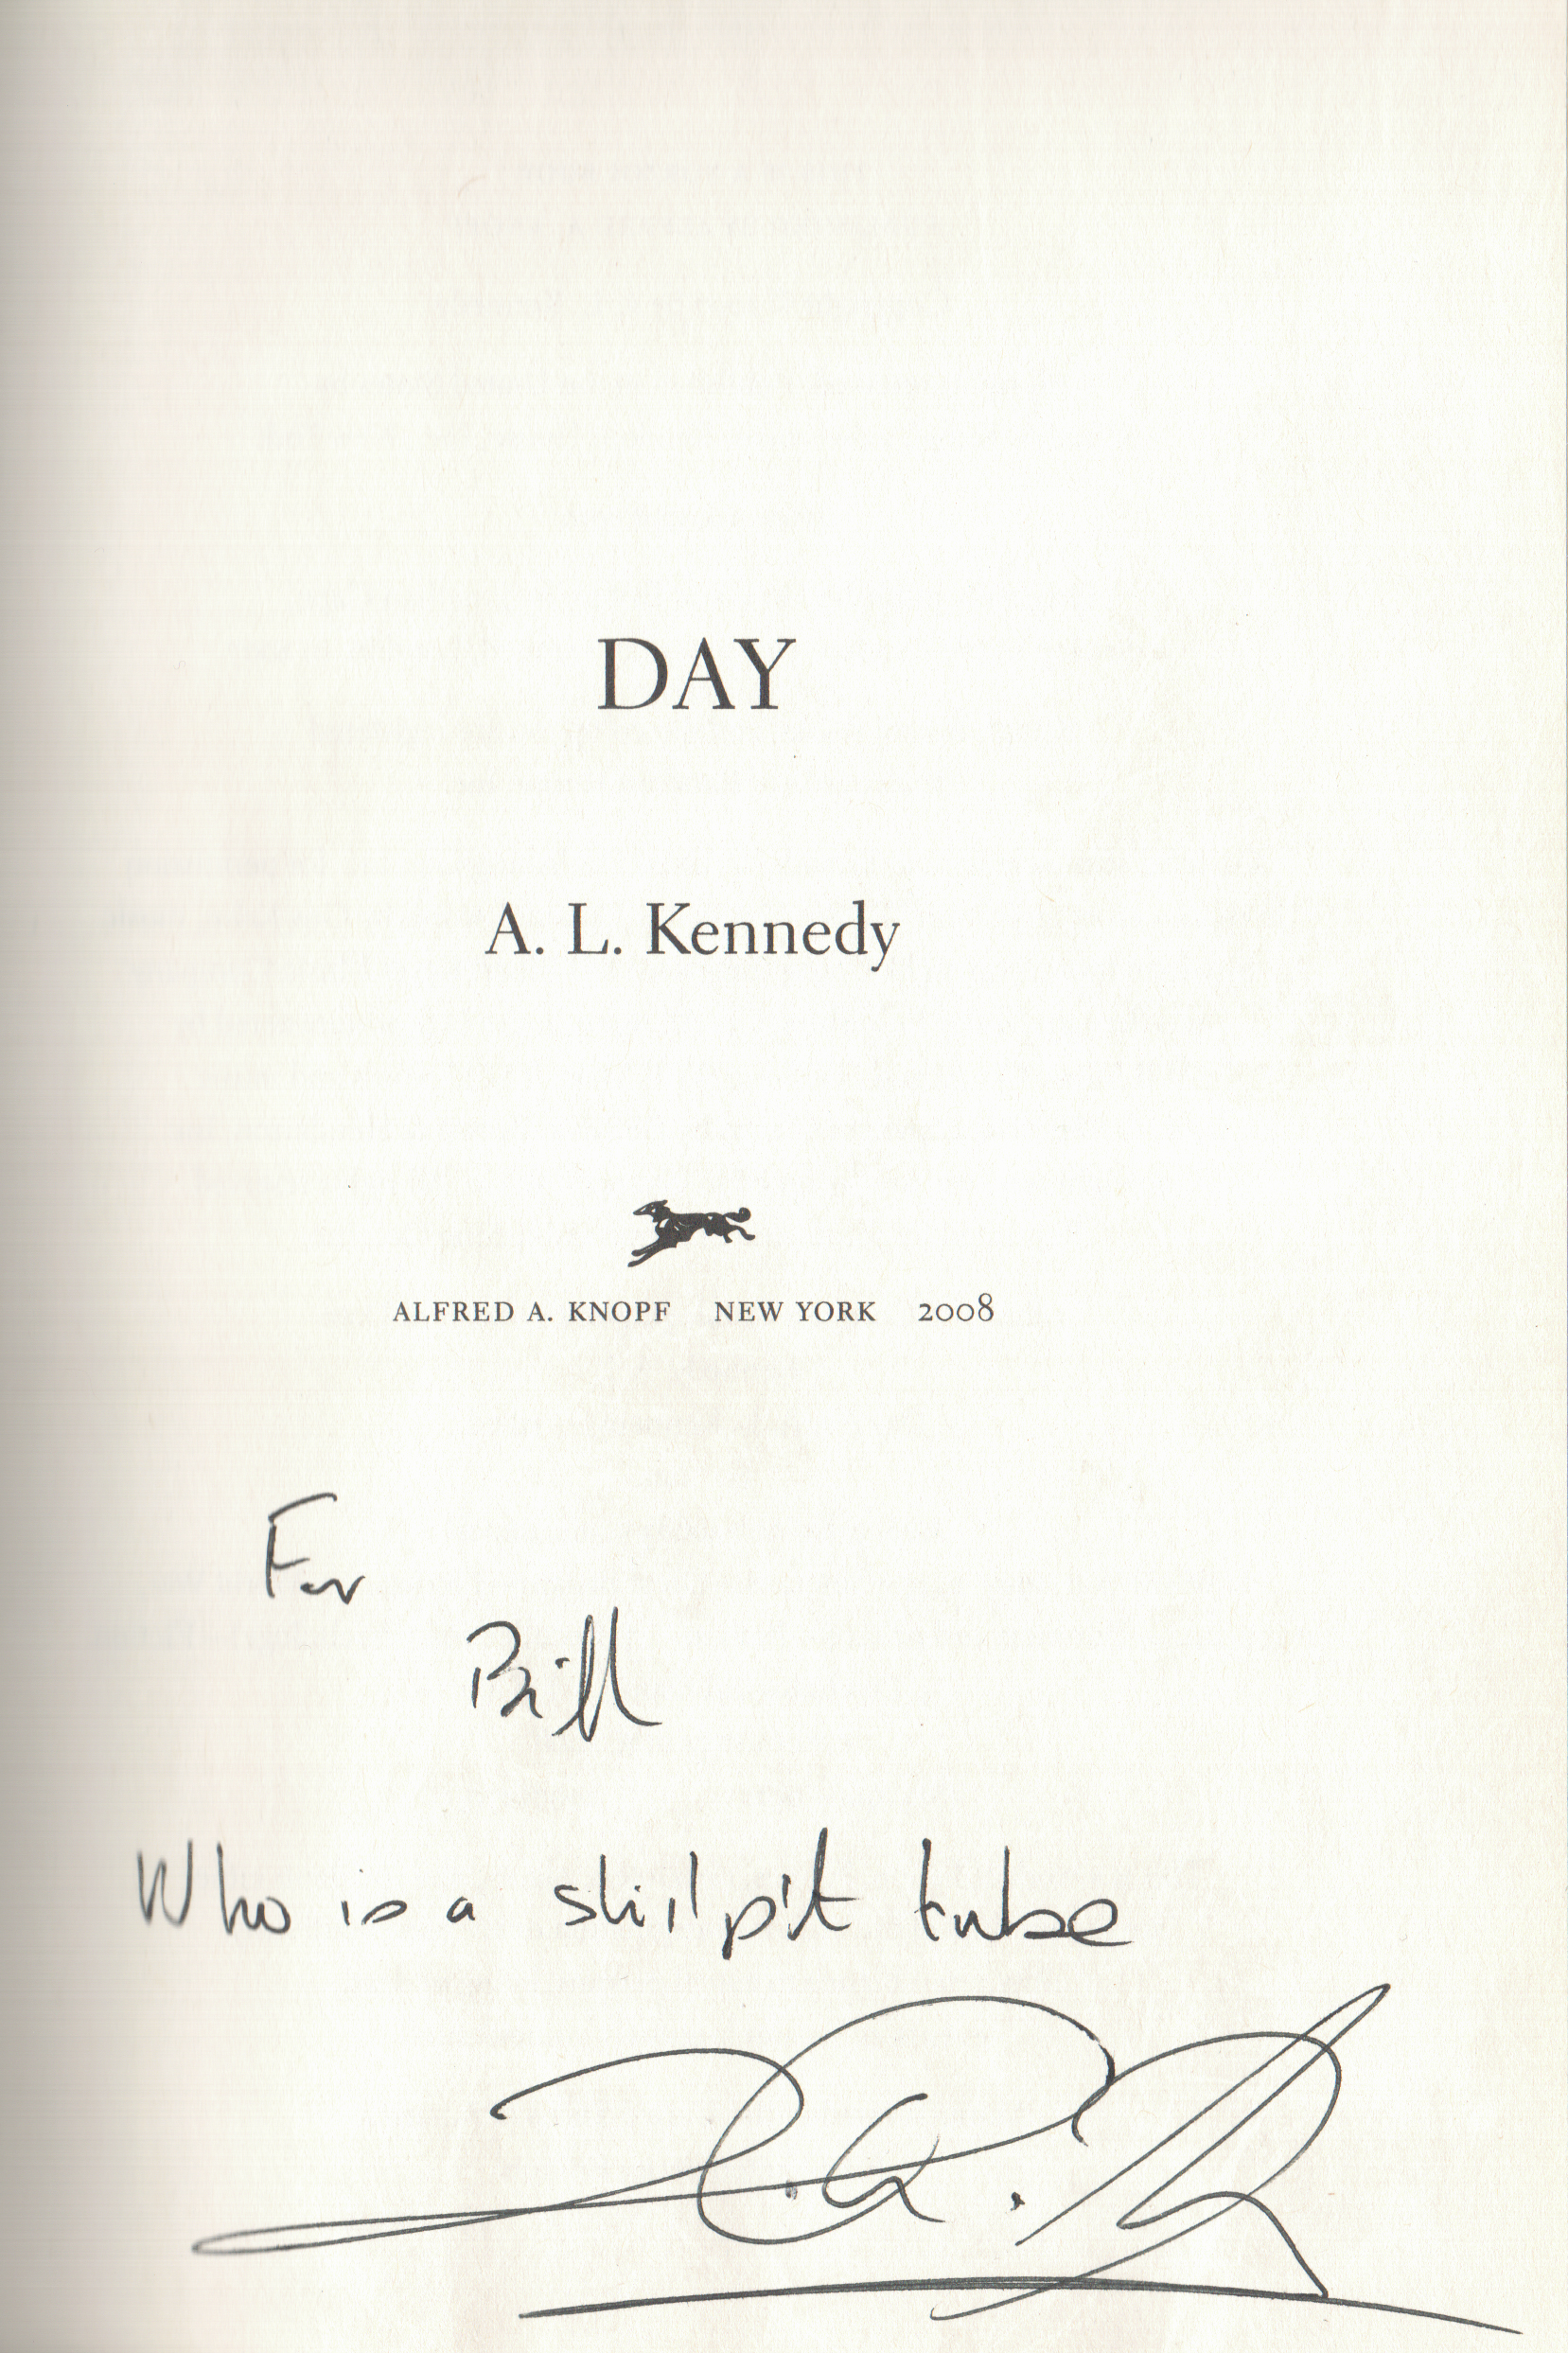 A.L. Kennedy Day signed